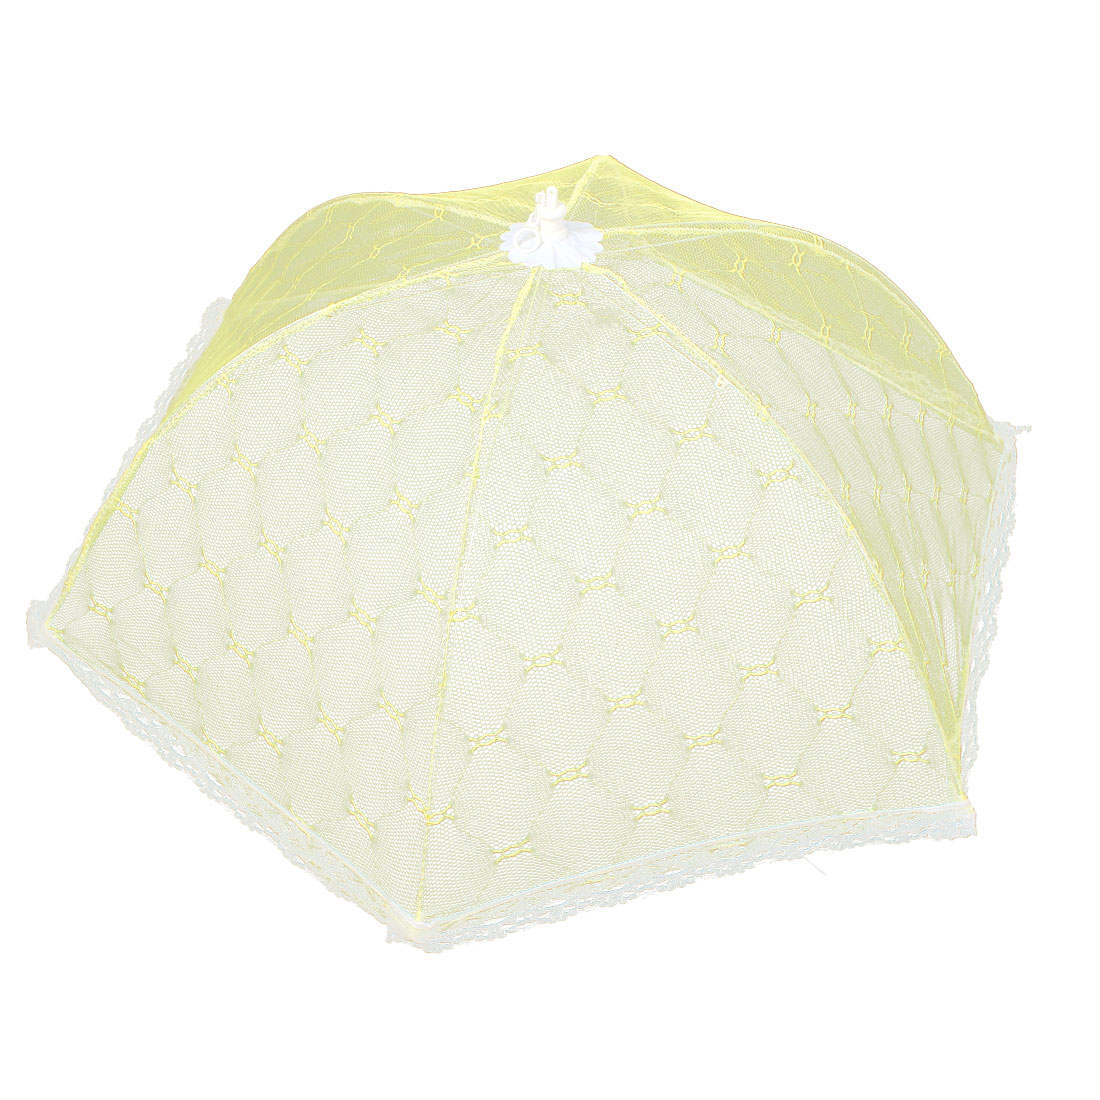 Household Kitchen Picnic Party Metal Frame Nylon Netty Umbrella Shaped Foldable Food Cover Yellow